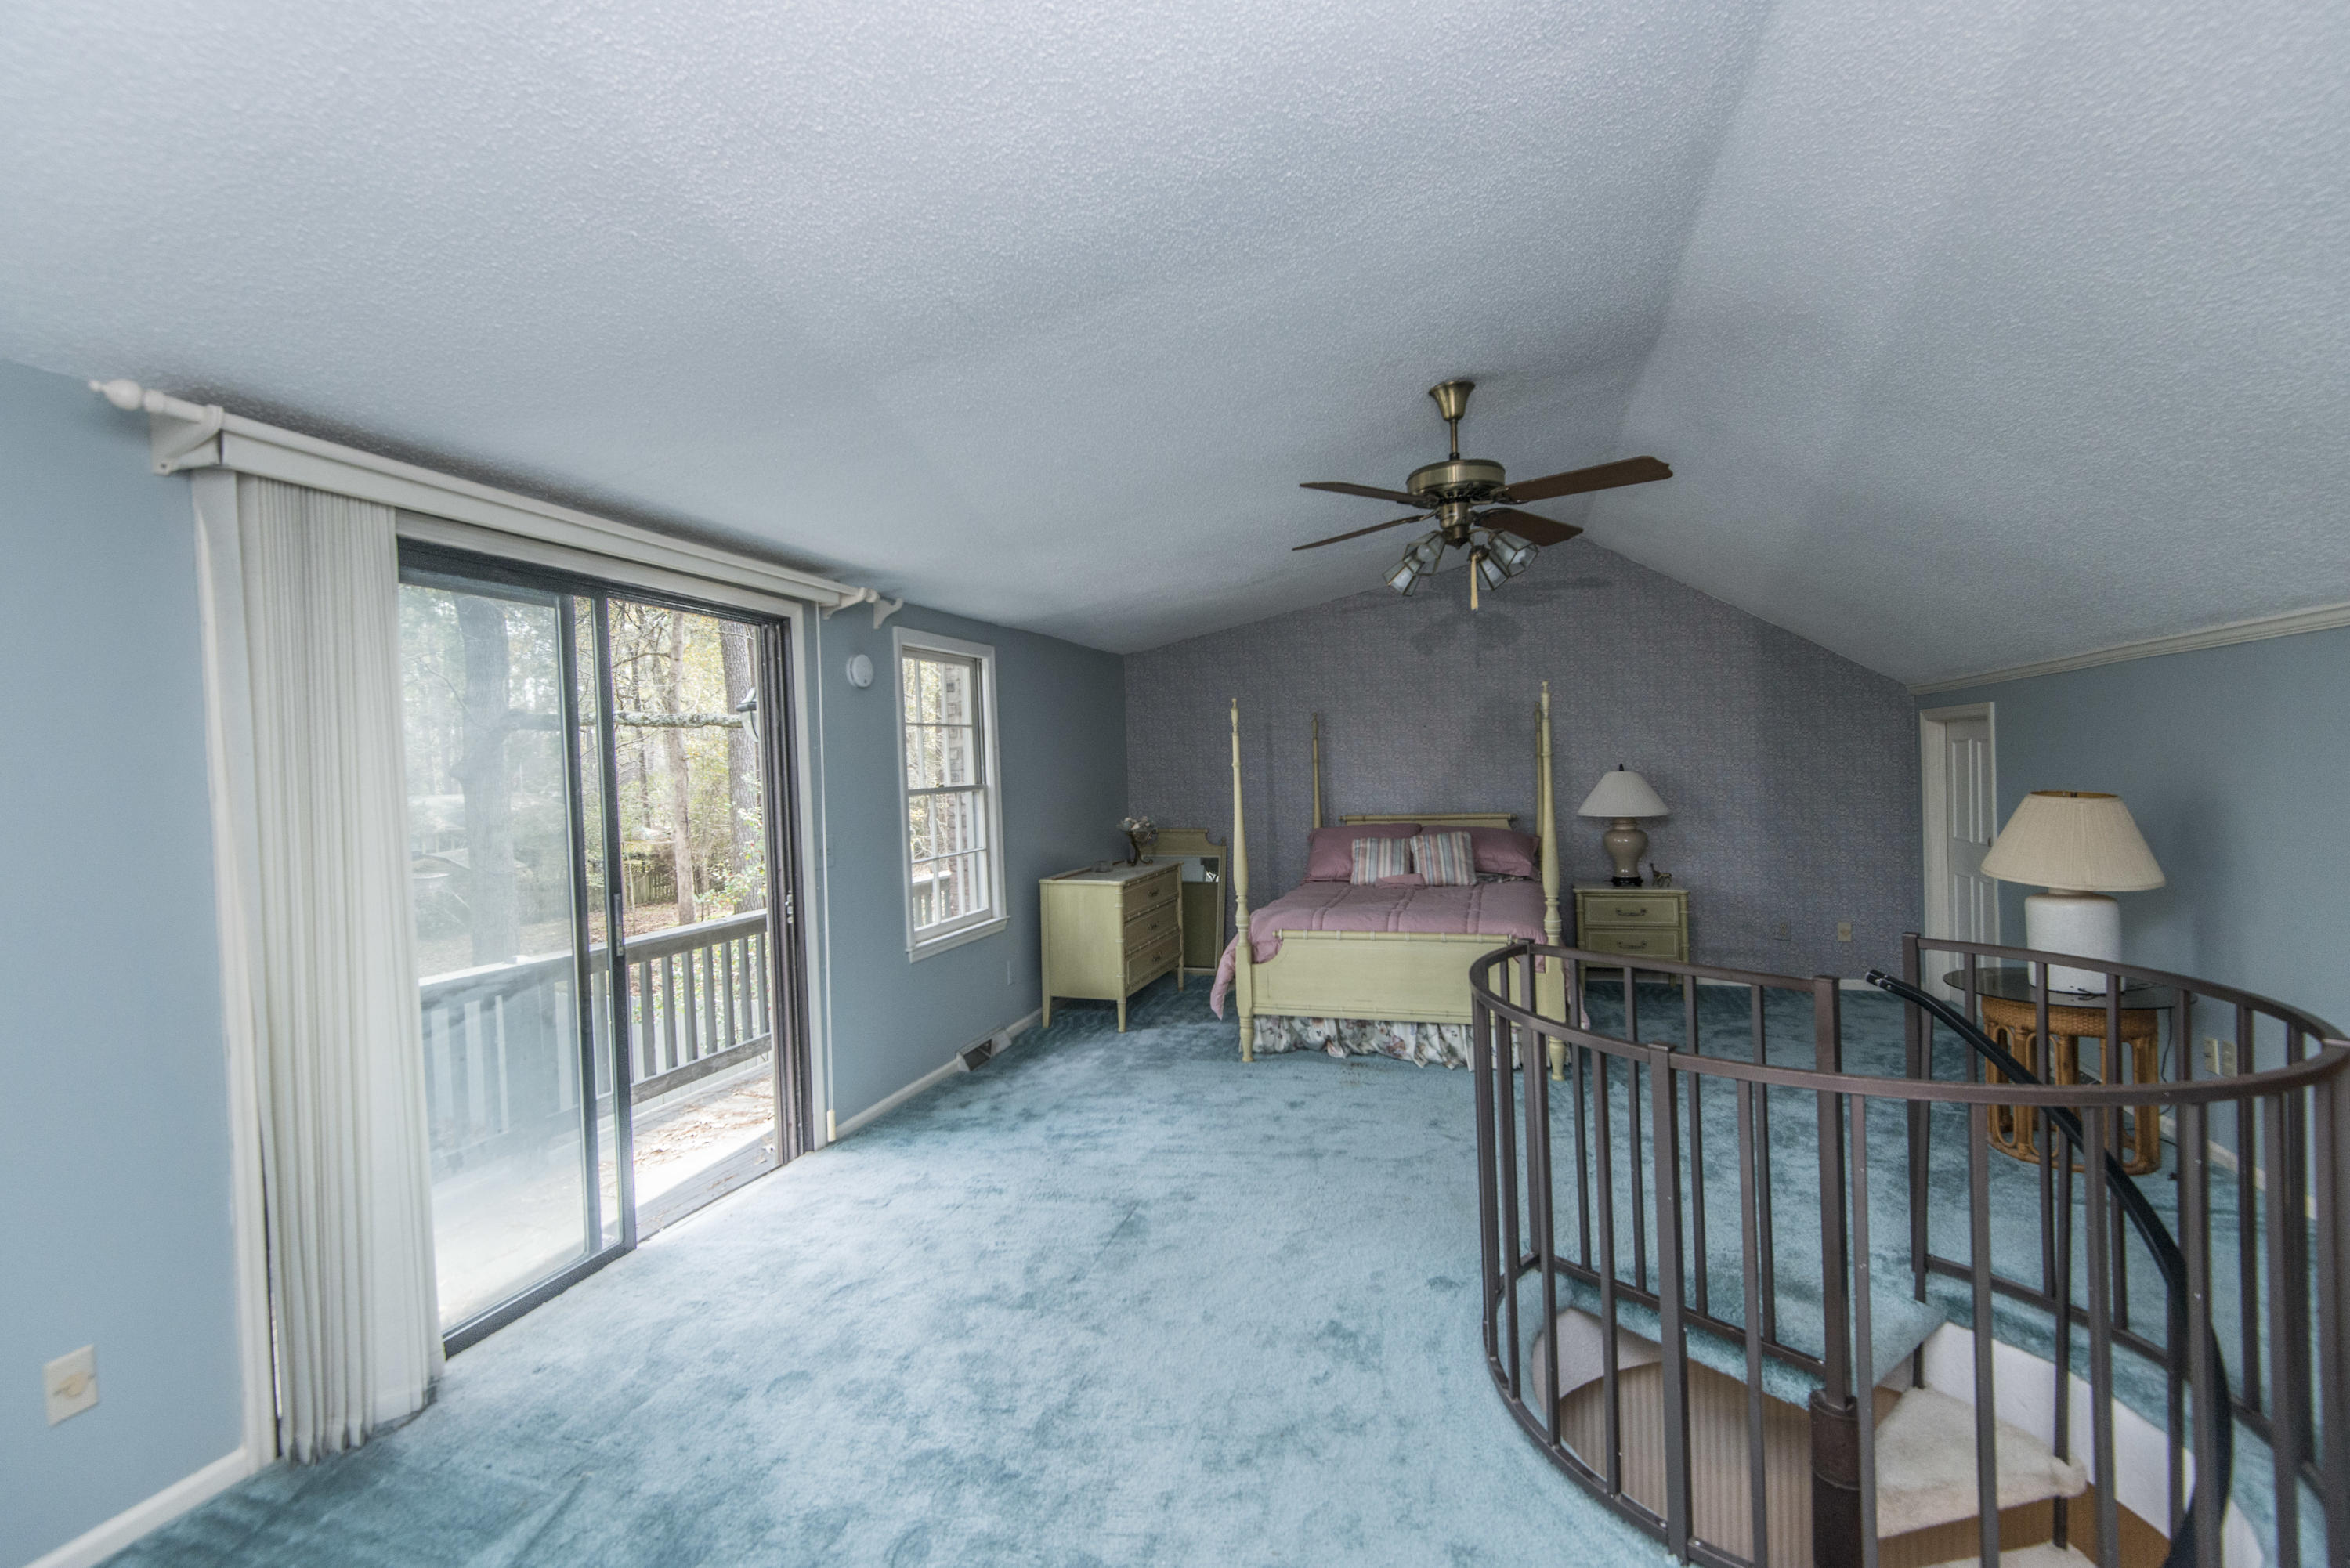 Kings Grant Homes For Sale - 102 Candlewood, Summerville, SC - 24